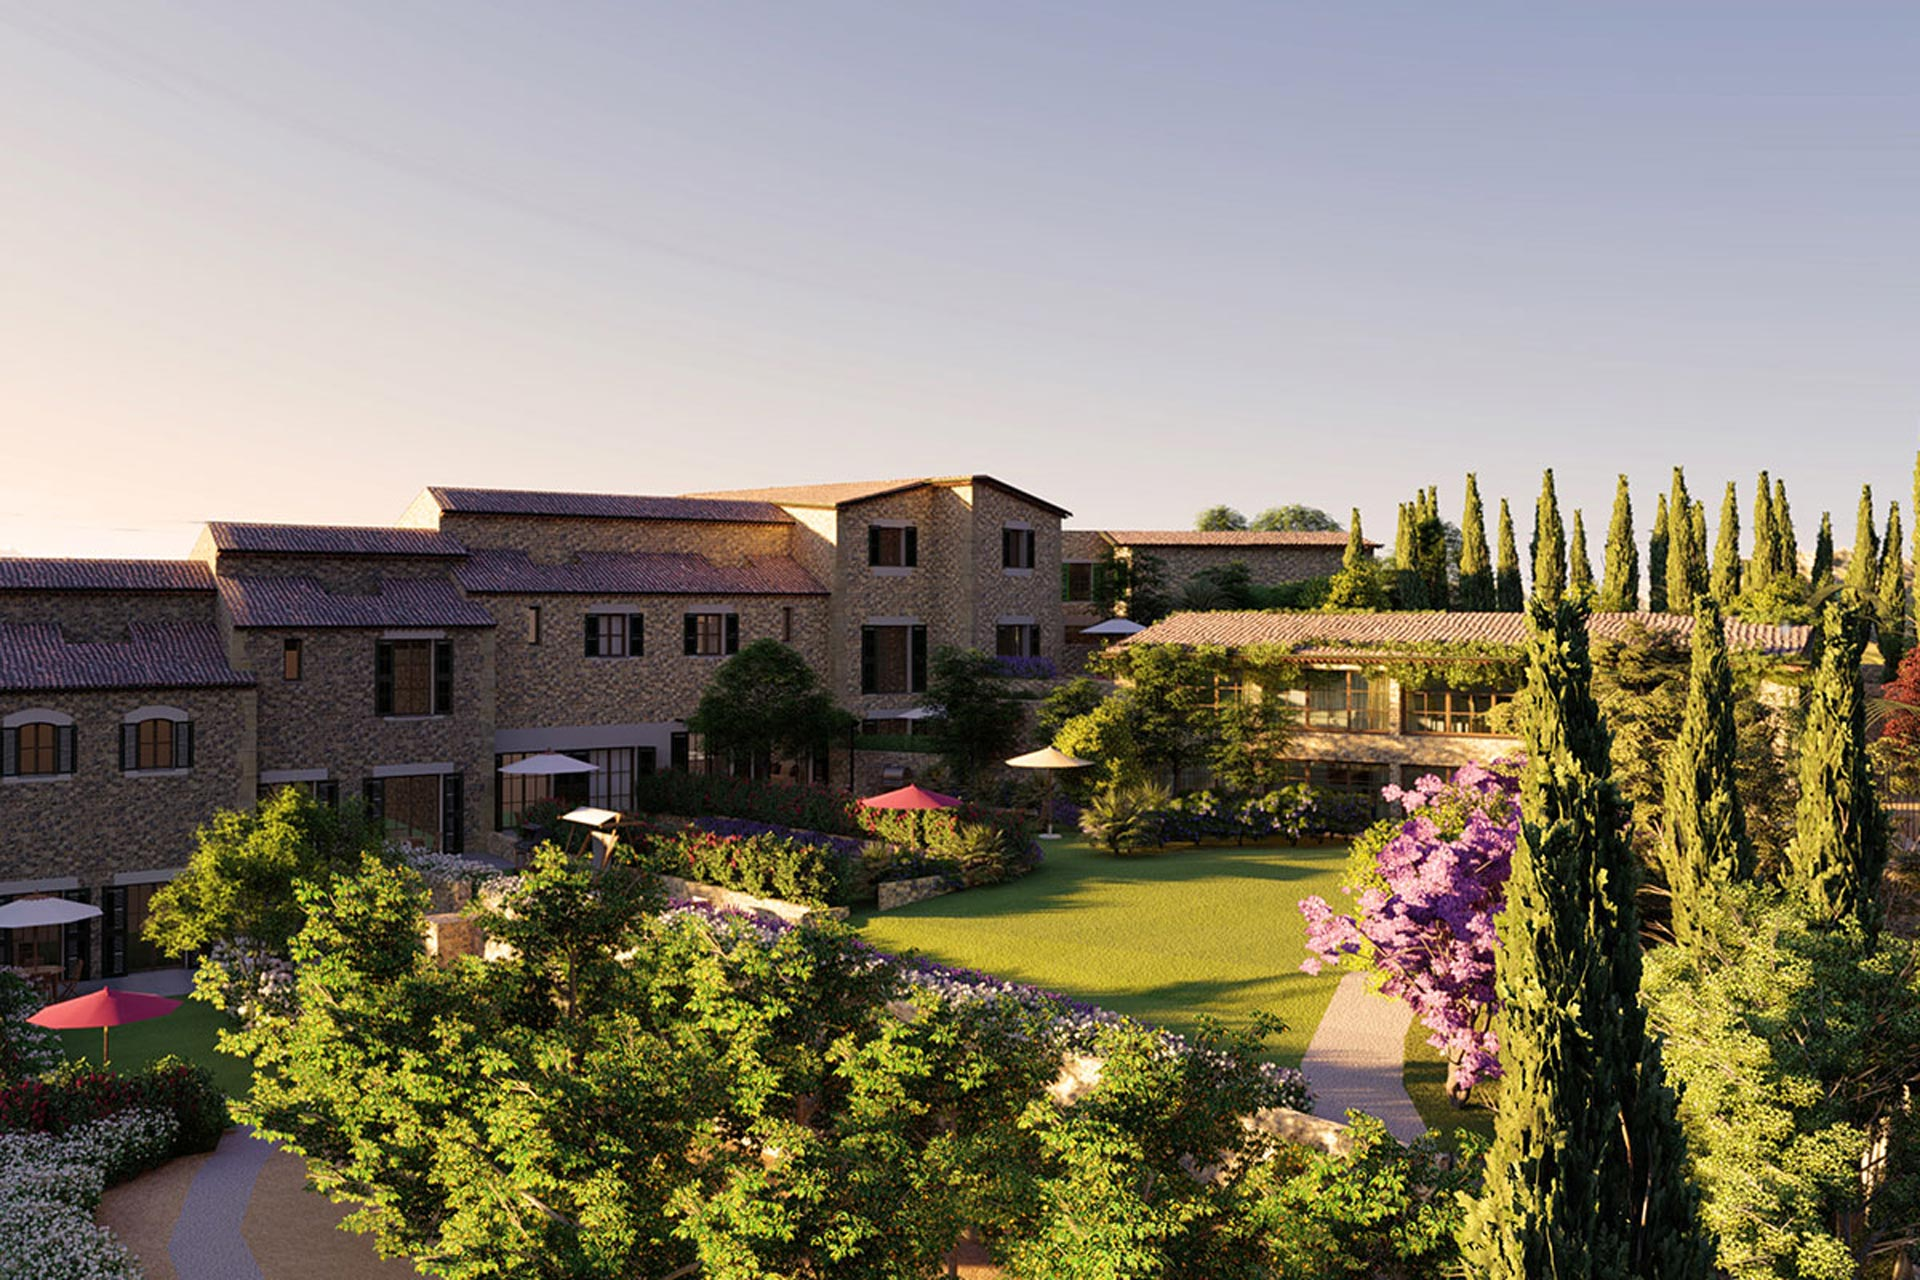 Complex of 6 villas currently under construction with communal gardens and pool